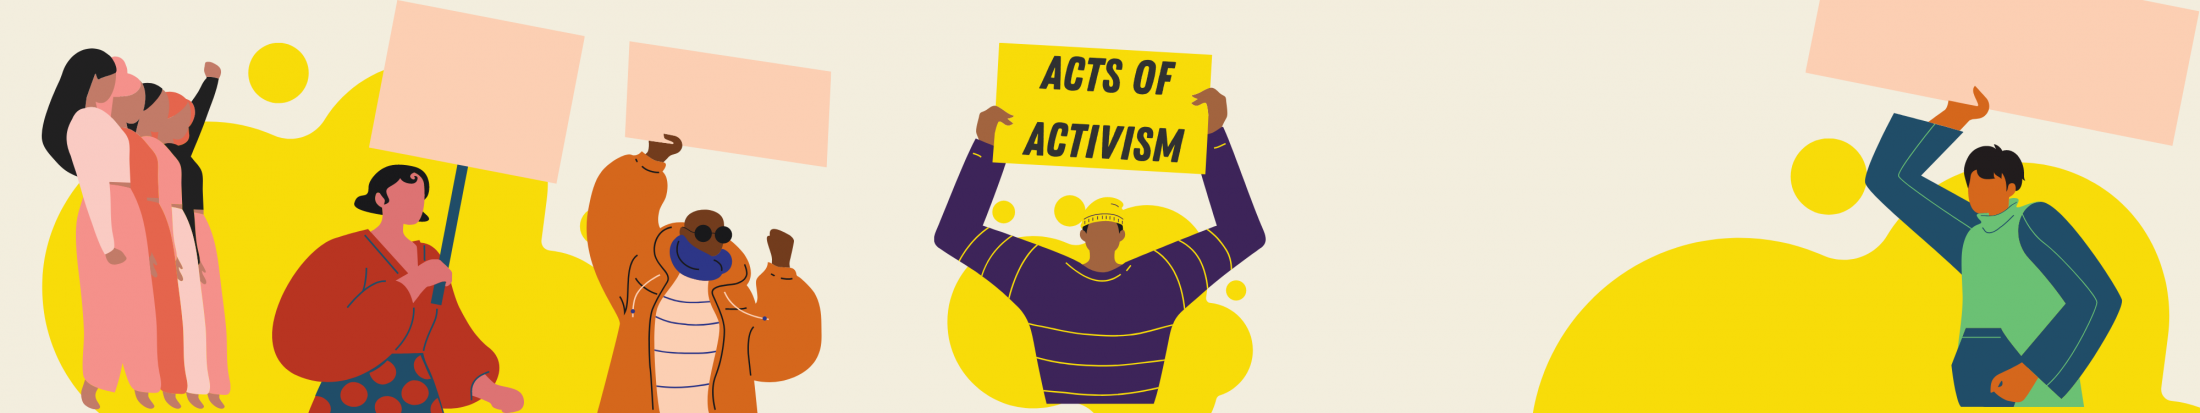 Acts of Activism